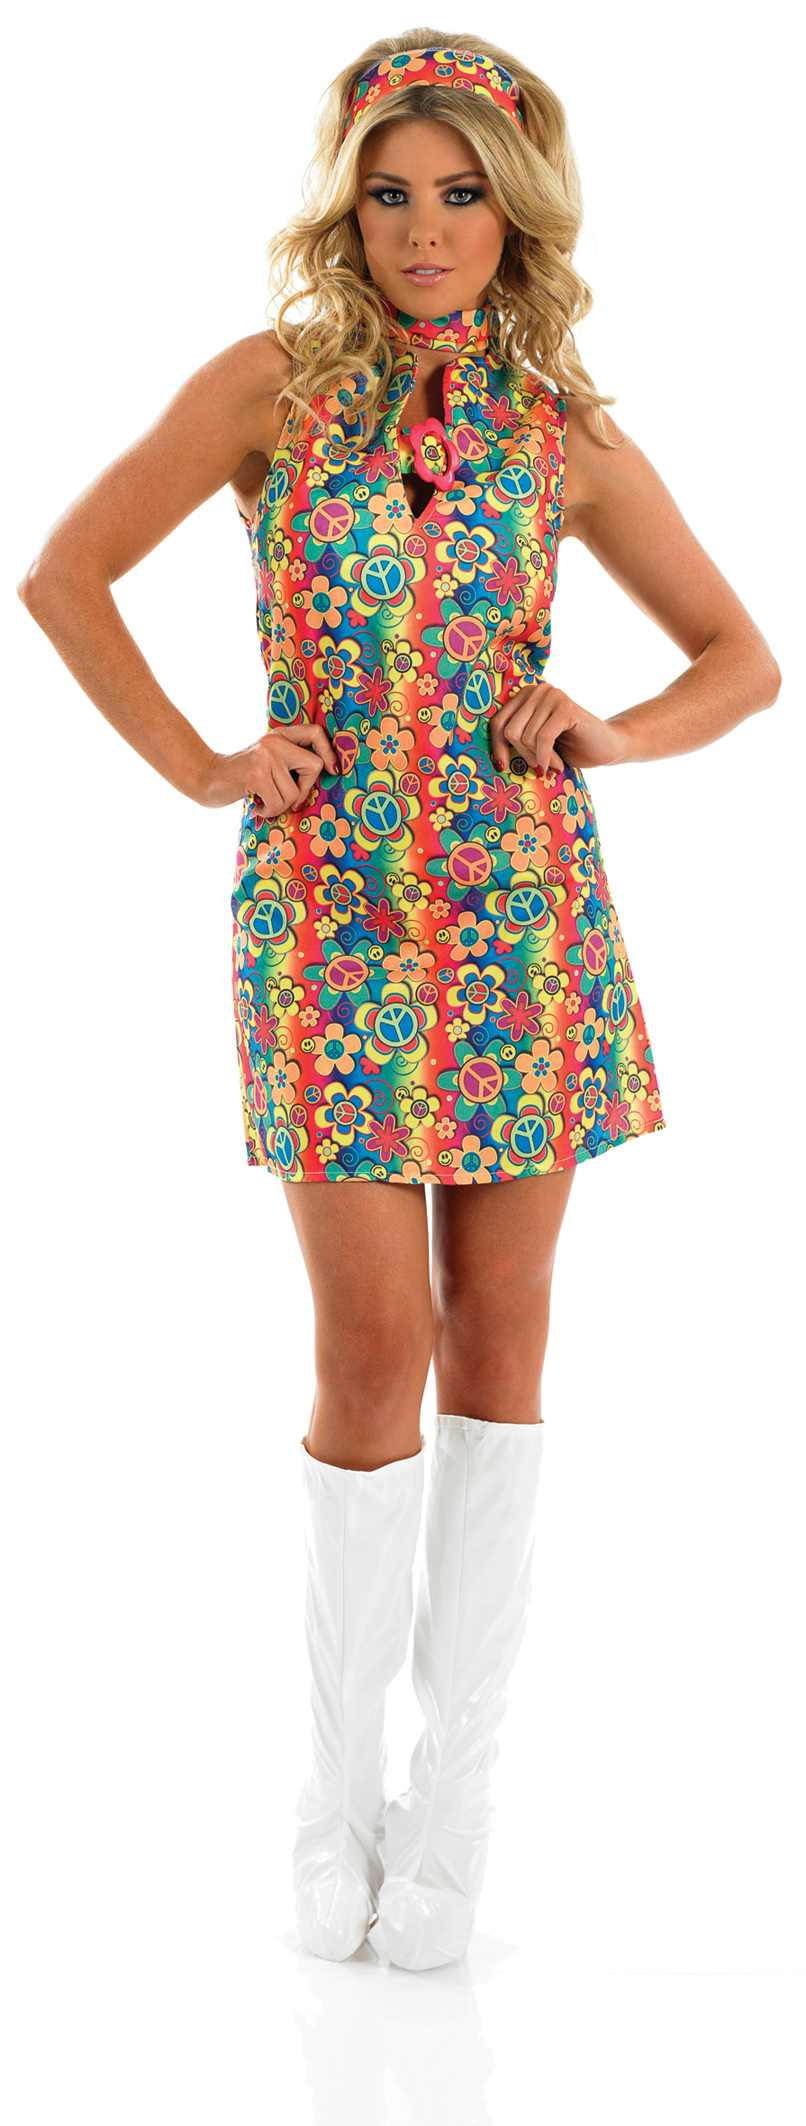 Ladies Uv Floral Hippie Costume For 60s 70s Hippie Hippy Fancy Dress Up Outfits | EBay